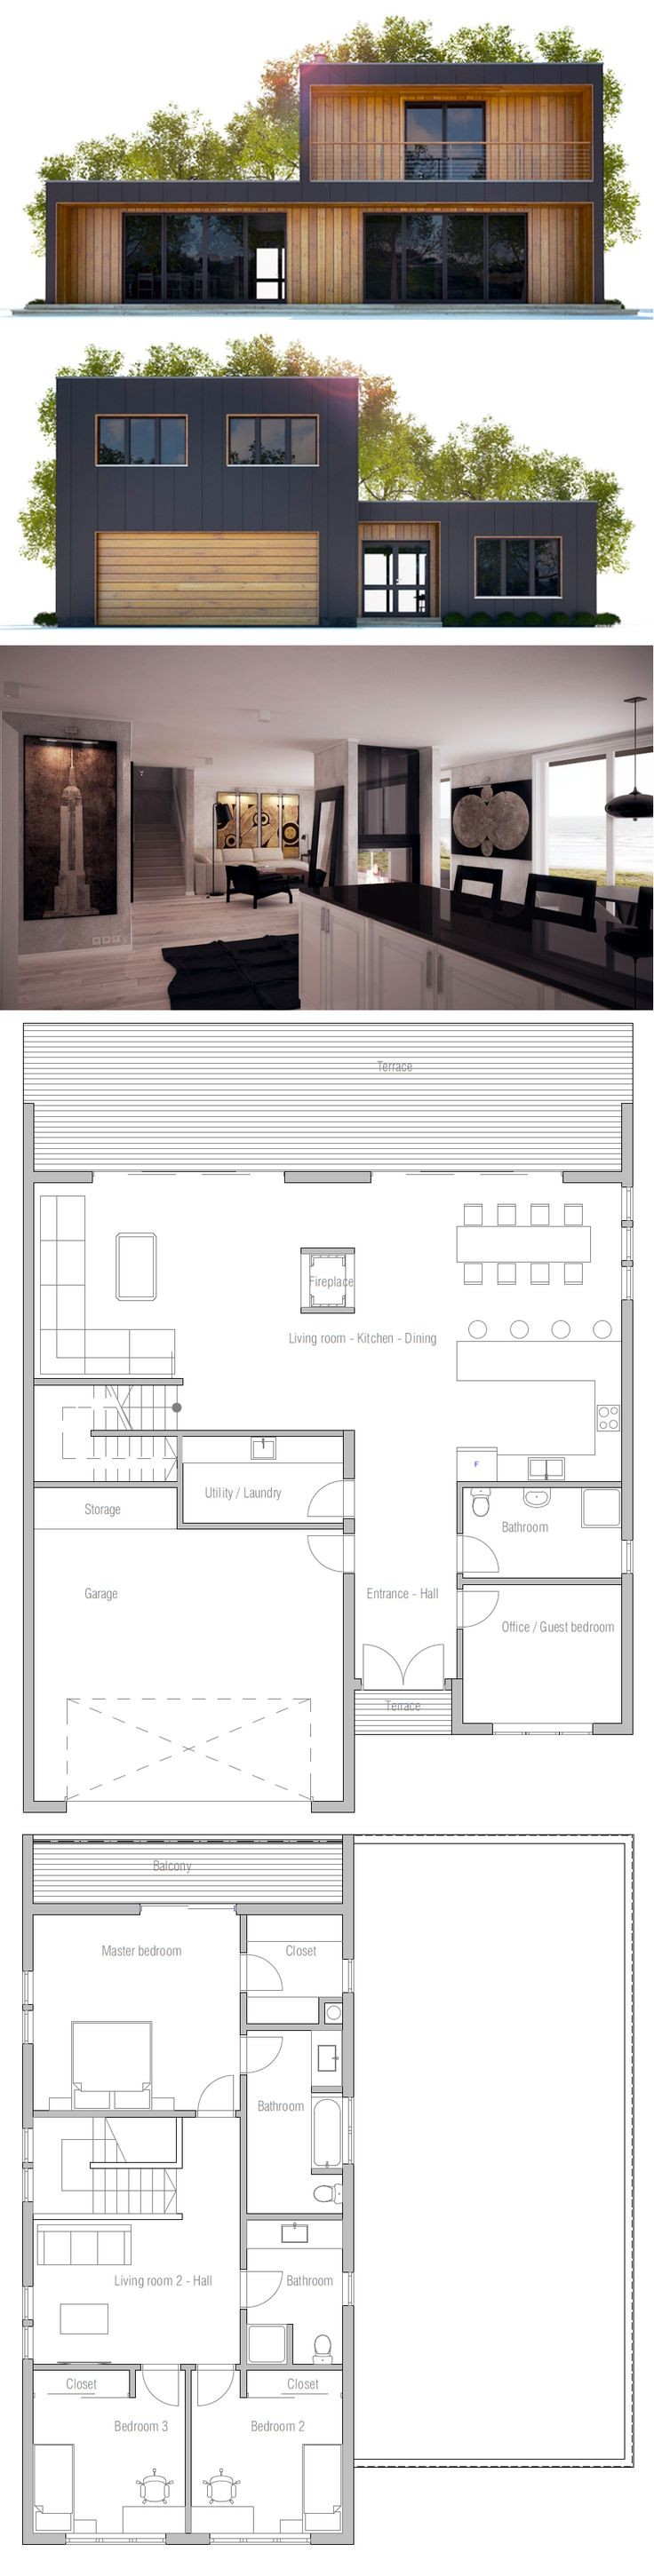 container house house plan distribucin who else wants simple step by step plans to design and build a container home from scratch - Simple House Plans